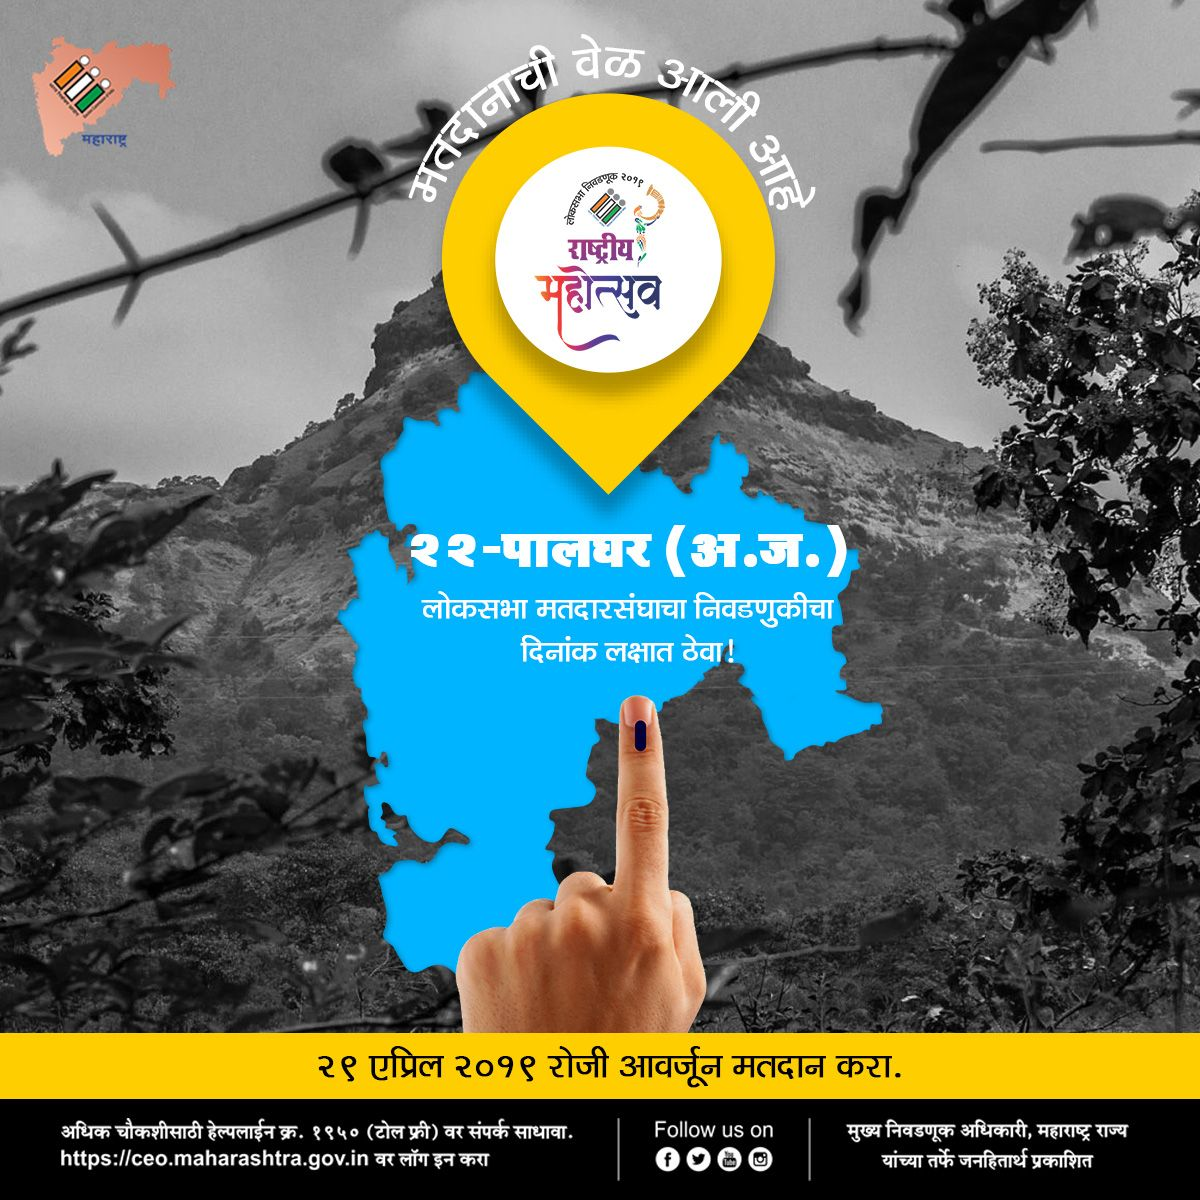 Marathi Election-22-Palghar.jpg